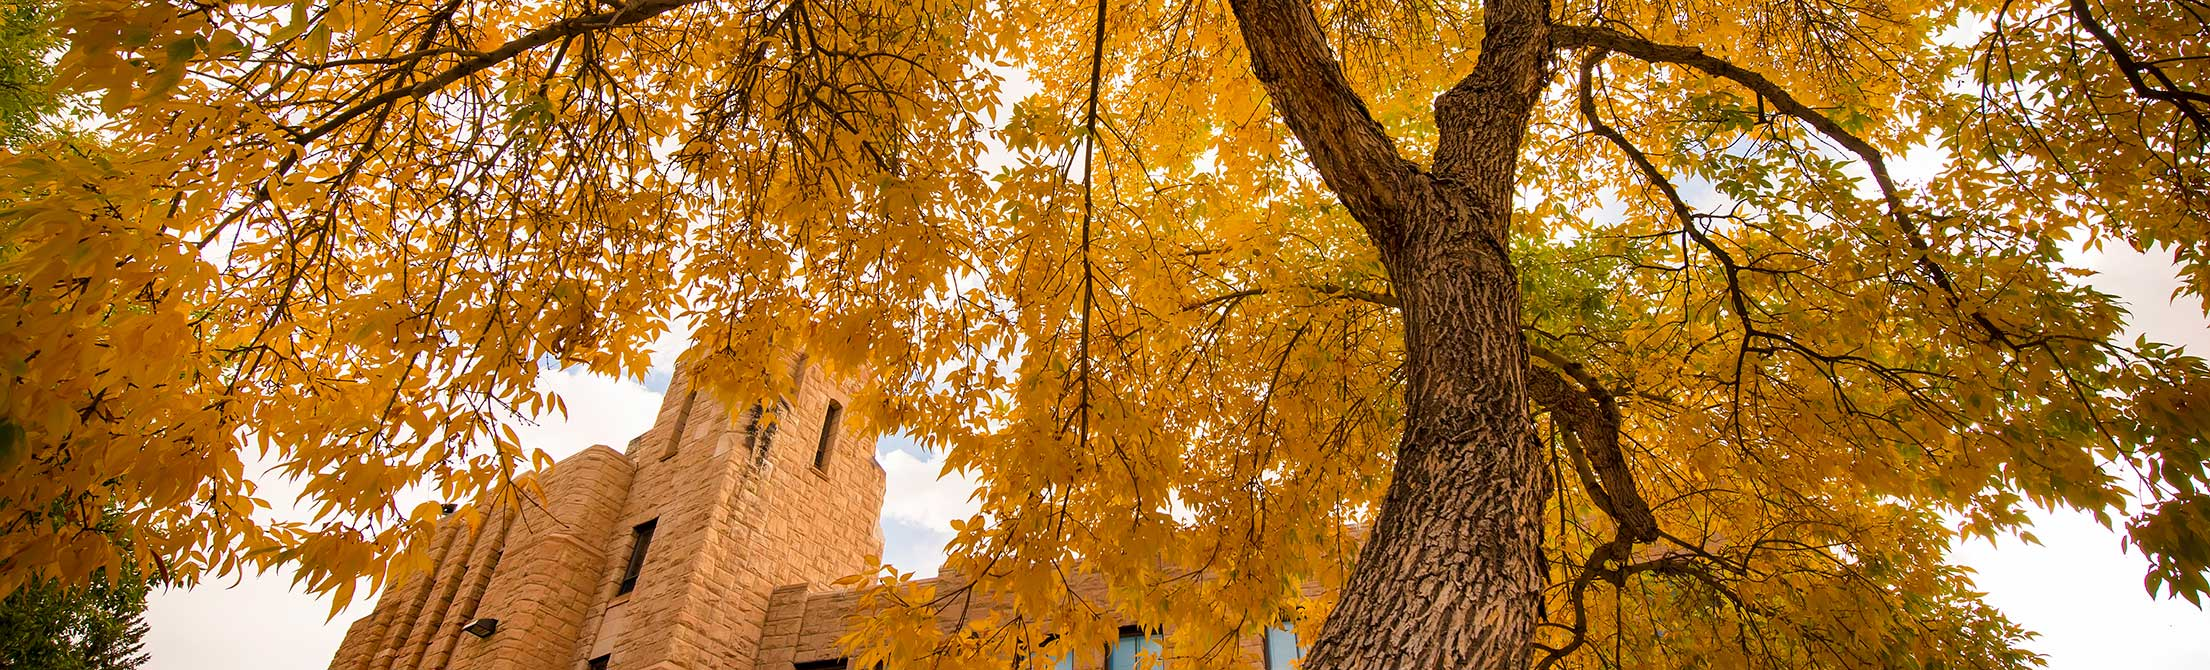 Fall image of campus trees